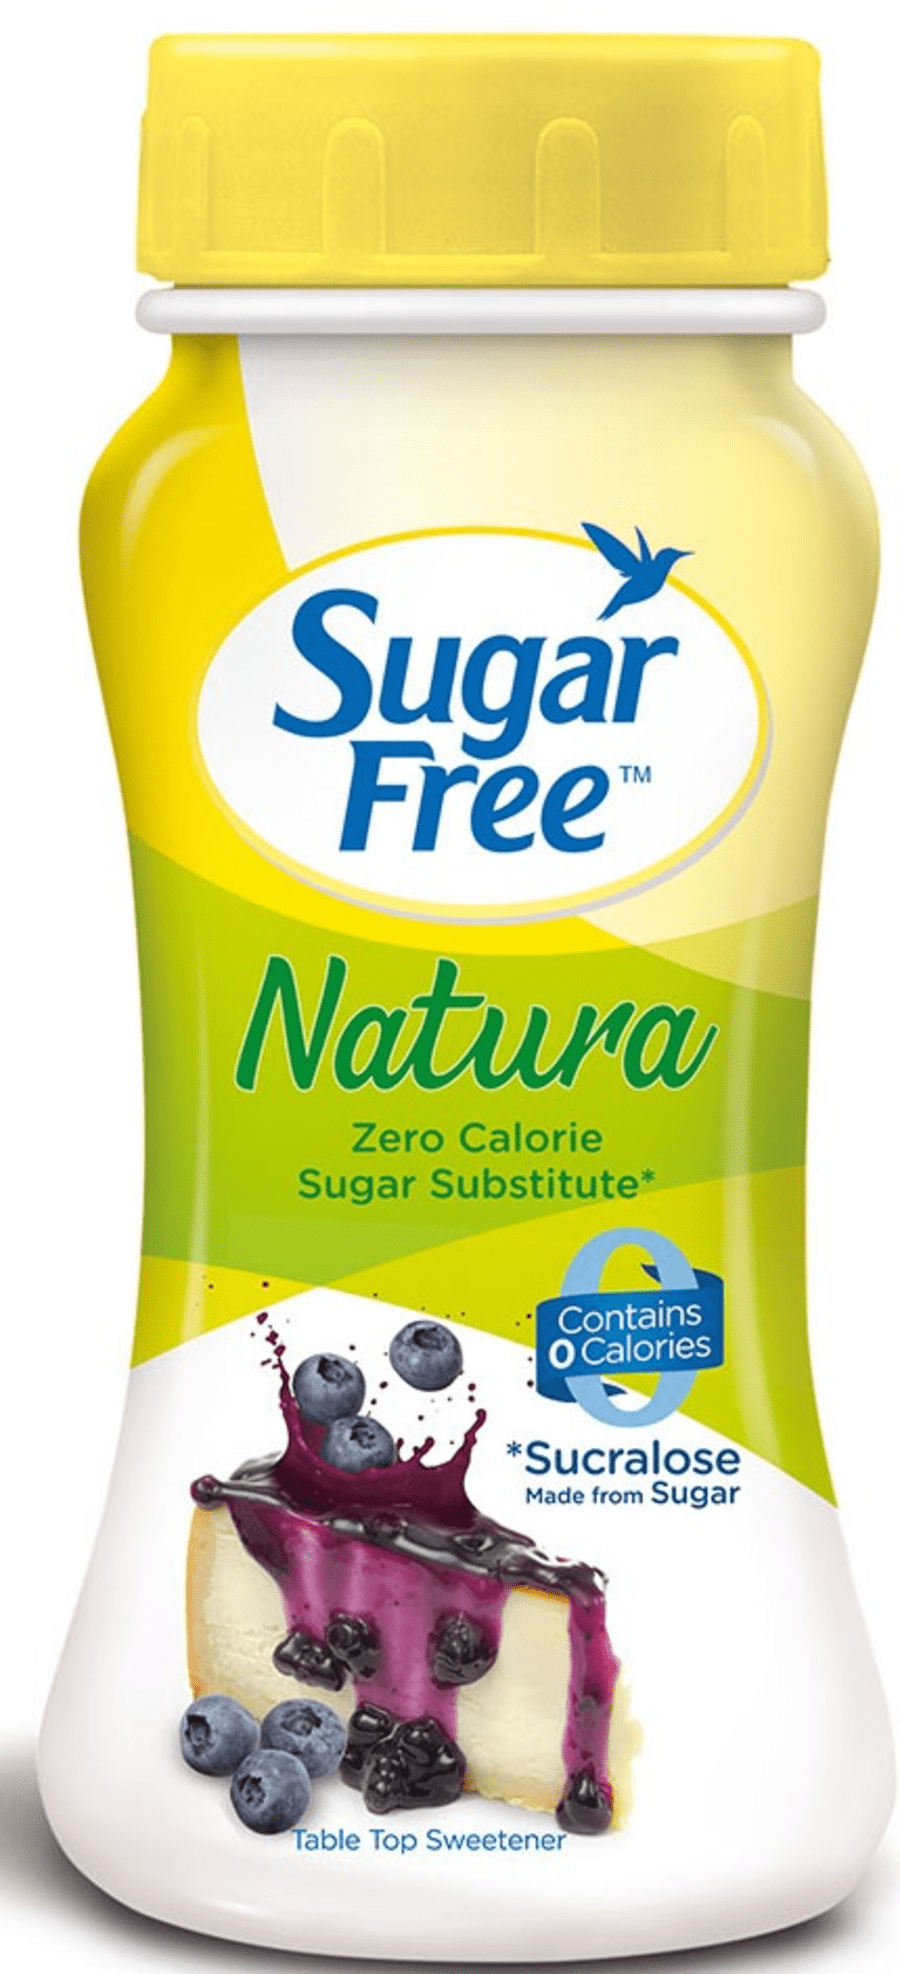 Sugar Free Natura 100gm Powder - Zero Calorie Sweetener & Sugar Substitute For Cooking